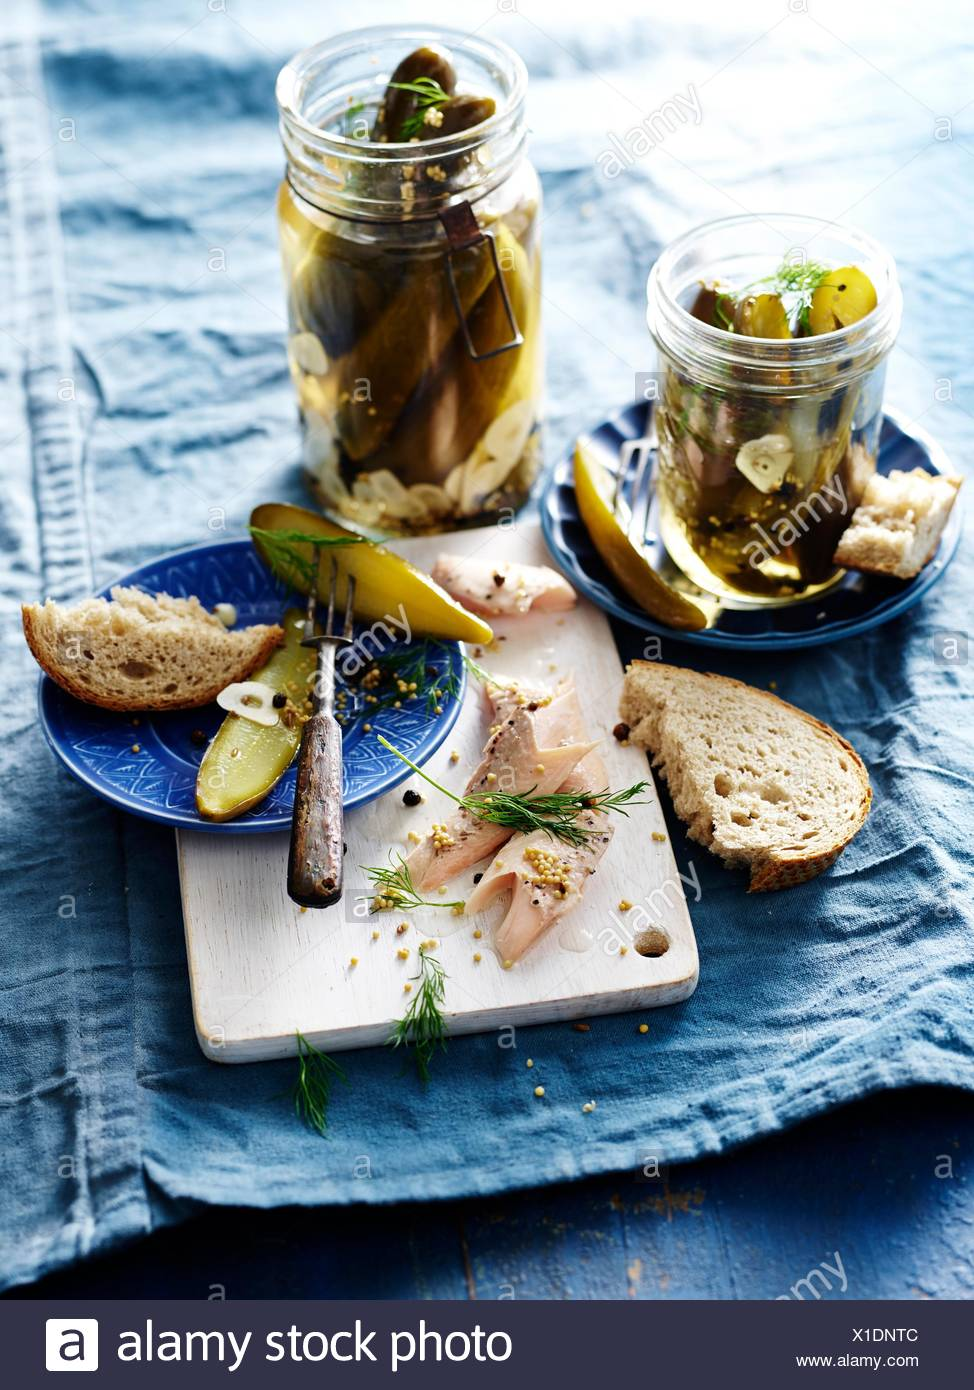 Dill Pickles with bread, close-up - Stock Image